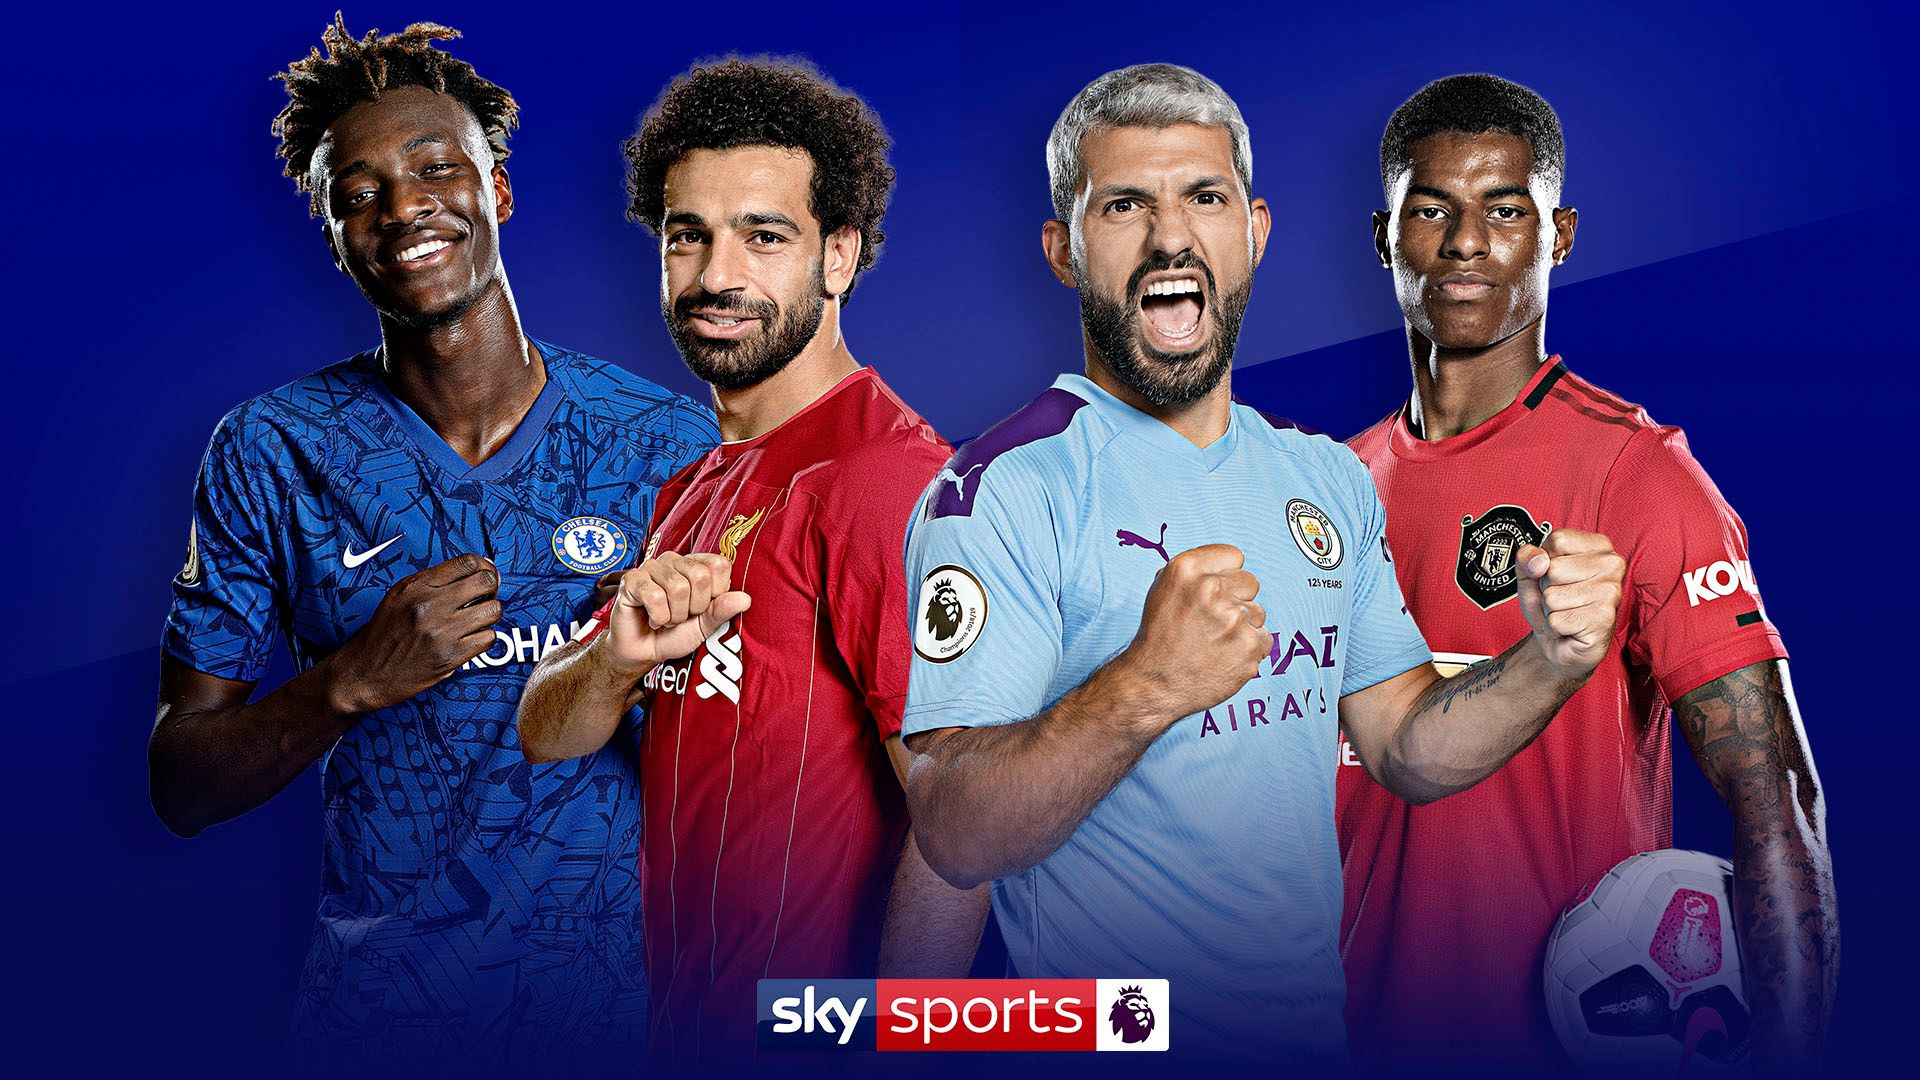 Sky to show 64 live PL games - 25 free-to-air